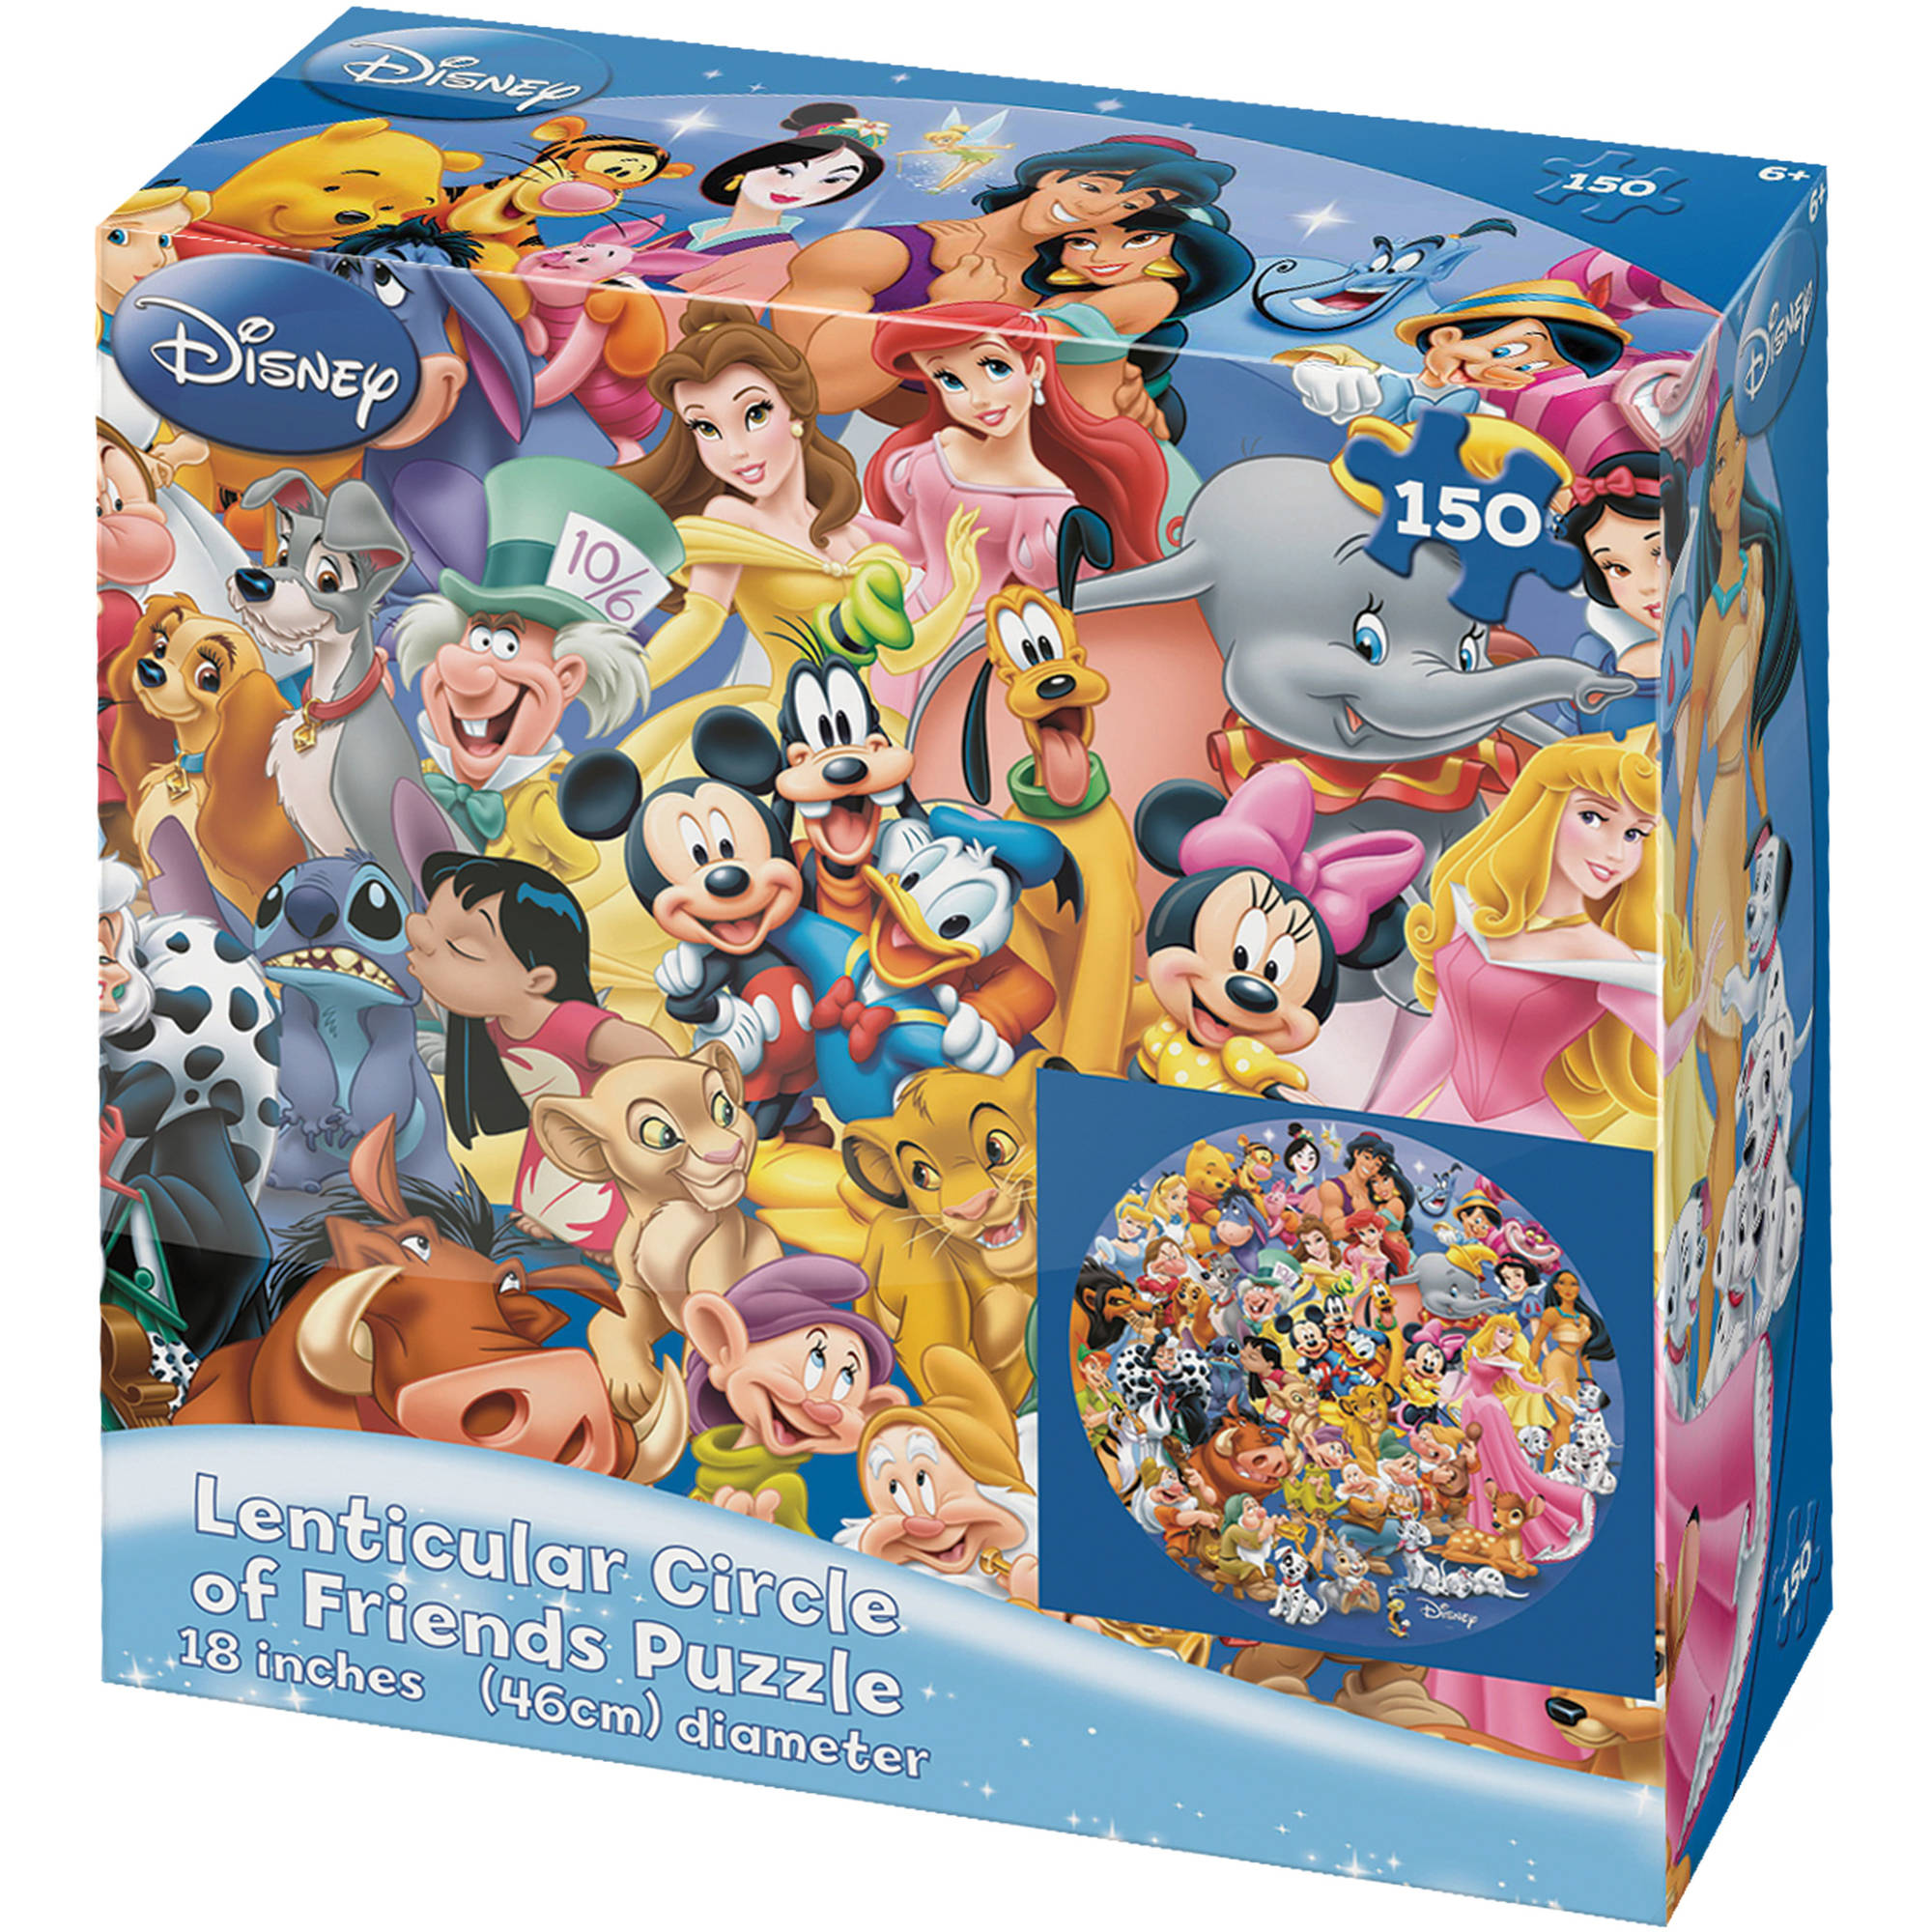 Disney Circle of Friends Lenticular 150-Piece Puzzle